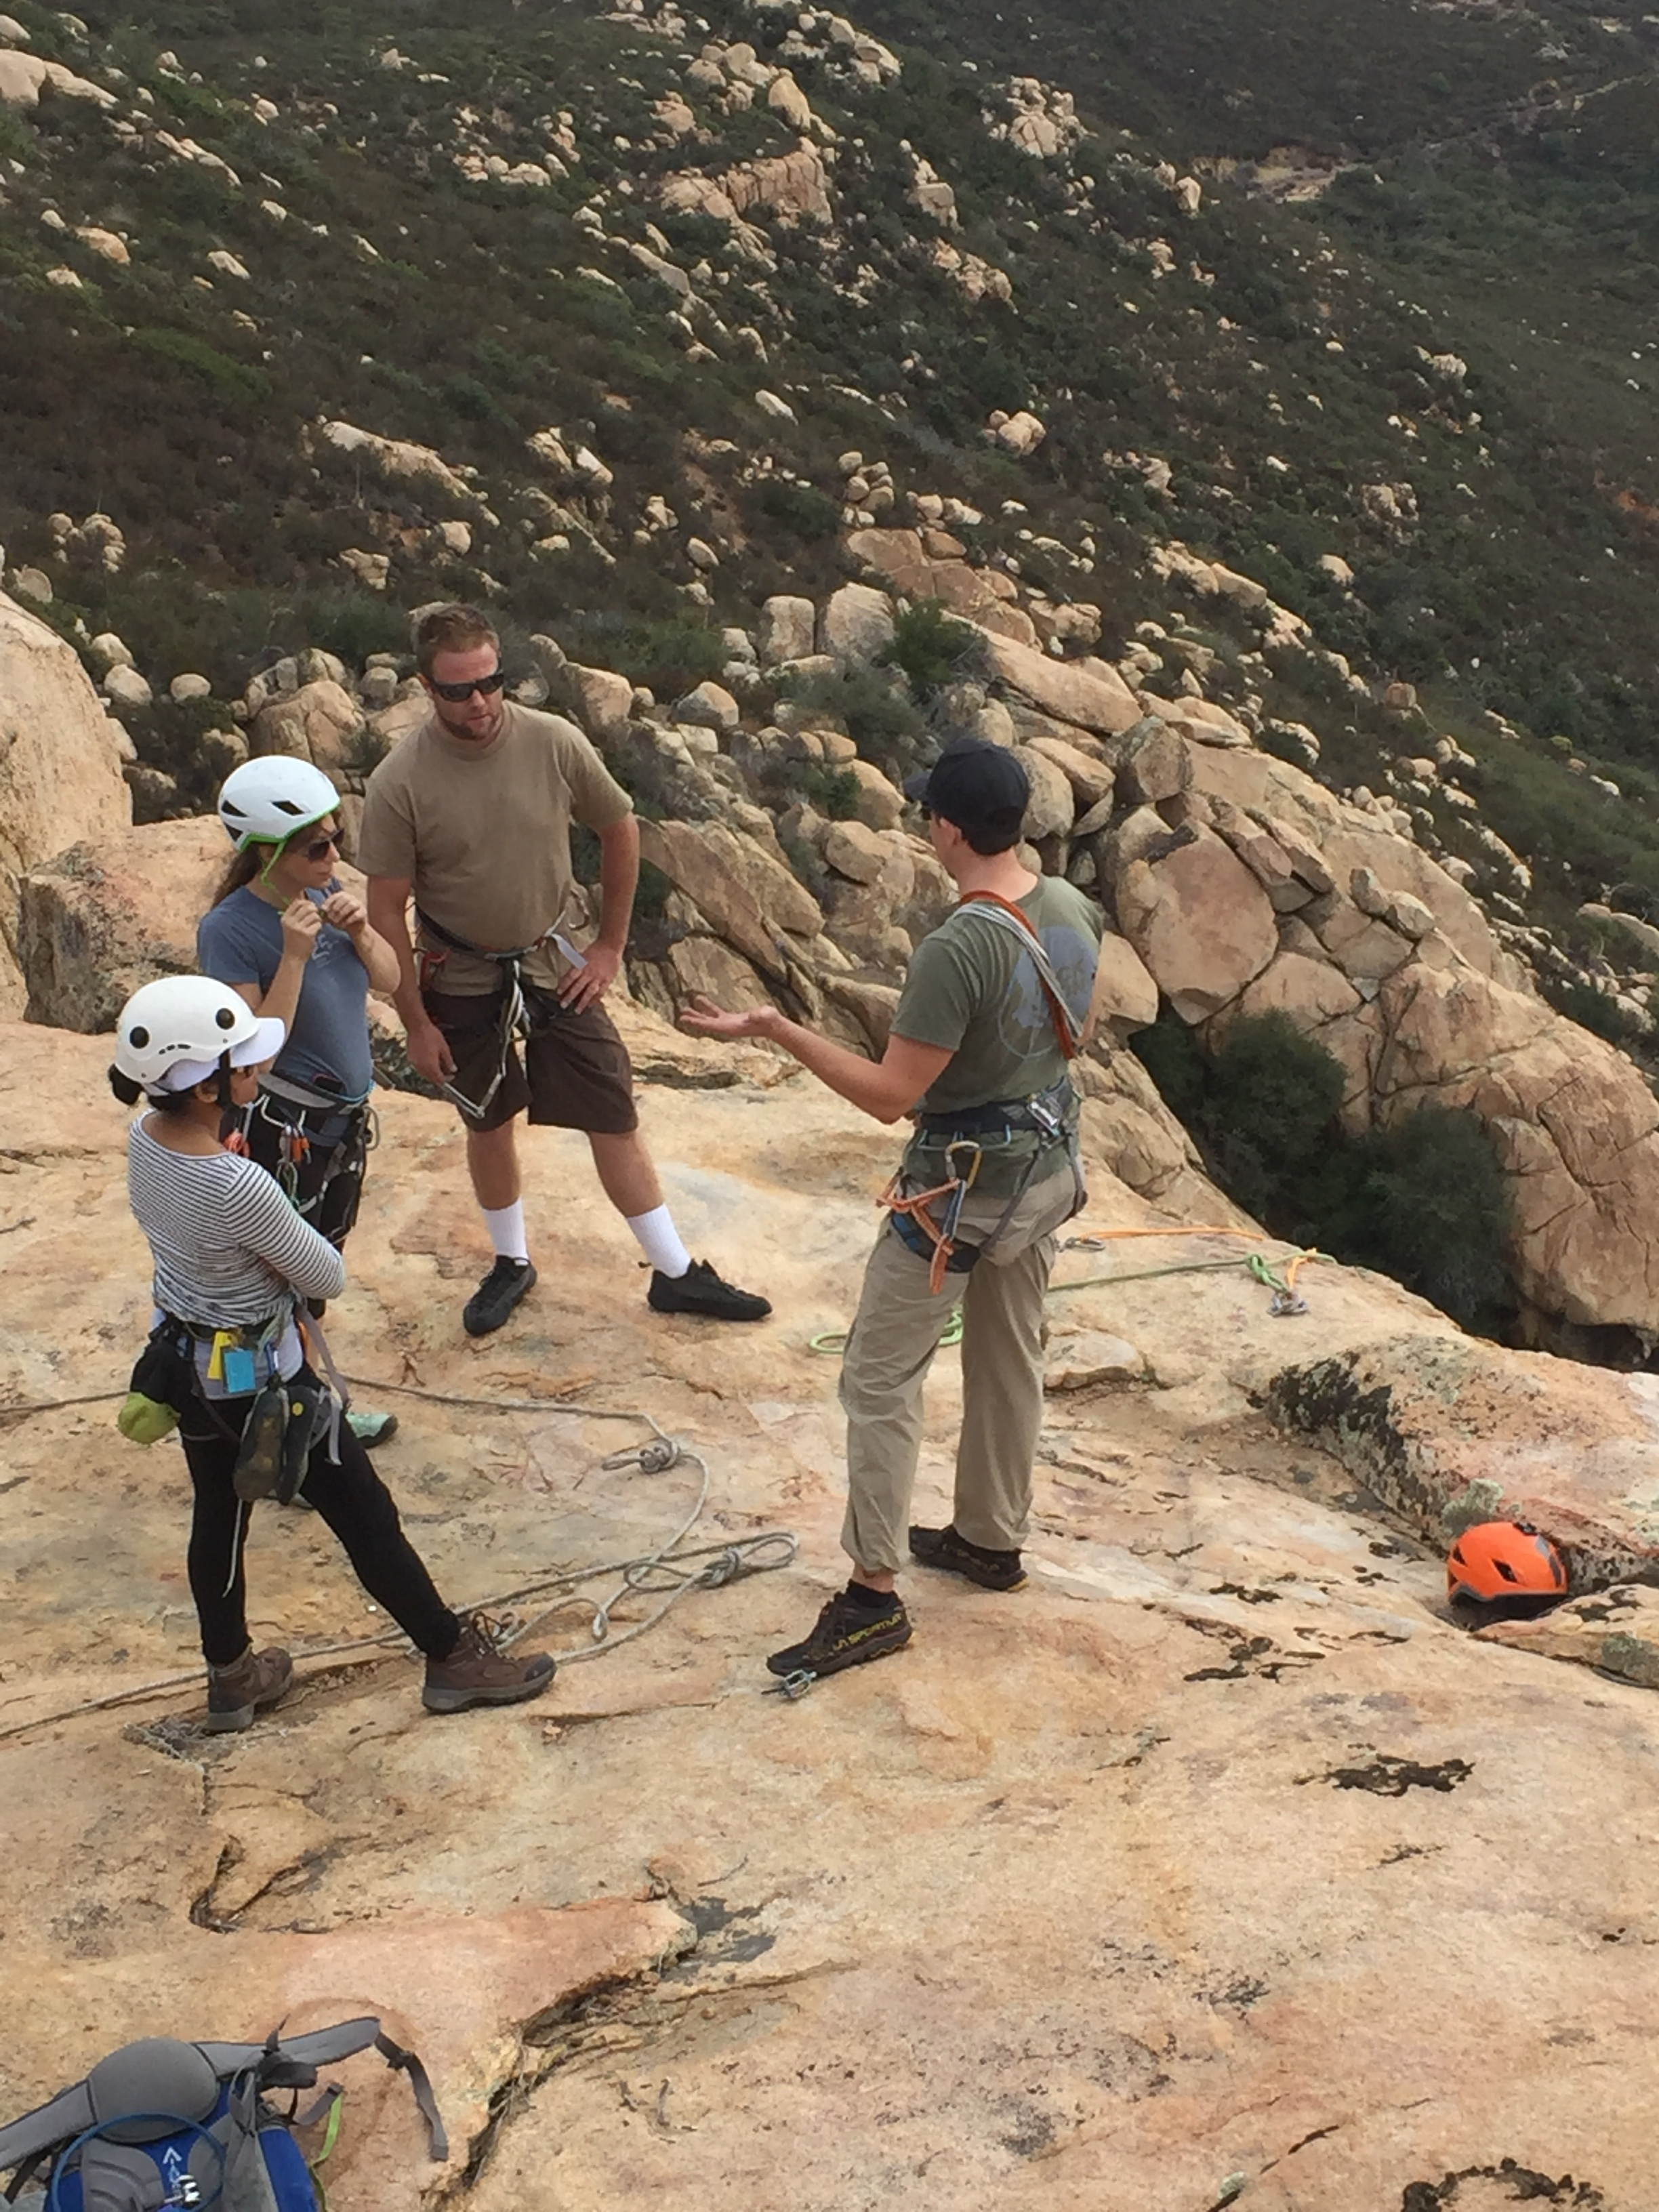 AAC Instructor Tom Vokes talks equalizing anchors and rappelling to AAC Members Melissa Angeles, CJ Hutchens and Toby Hutchens.  Photo cred: Piotr Andrzejczak.